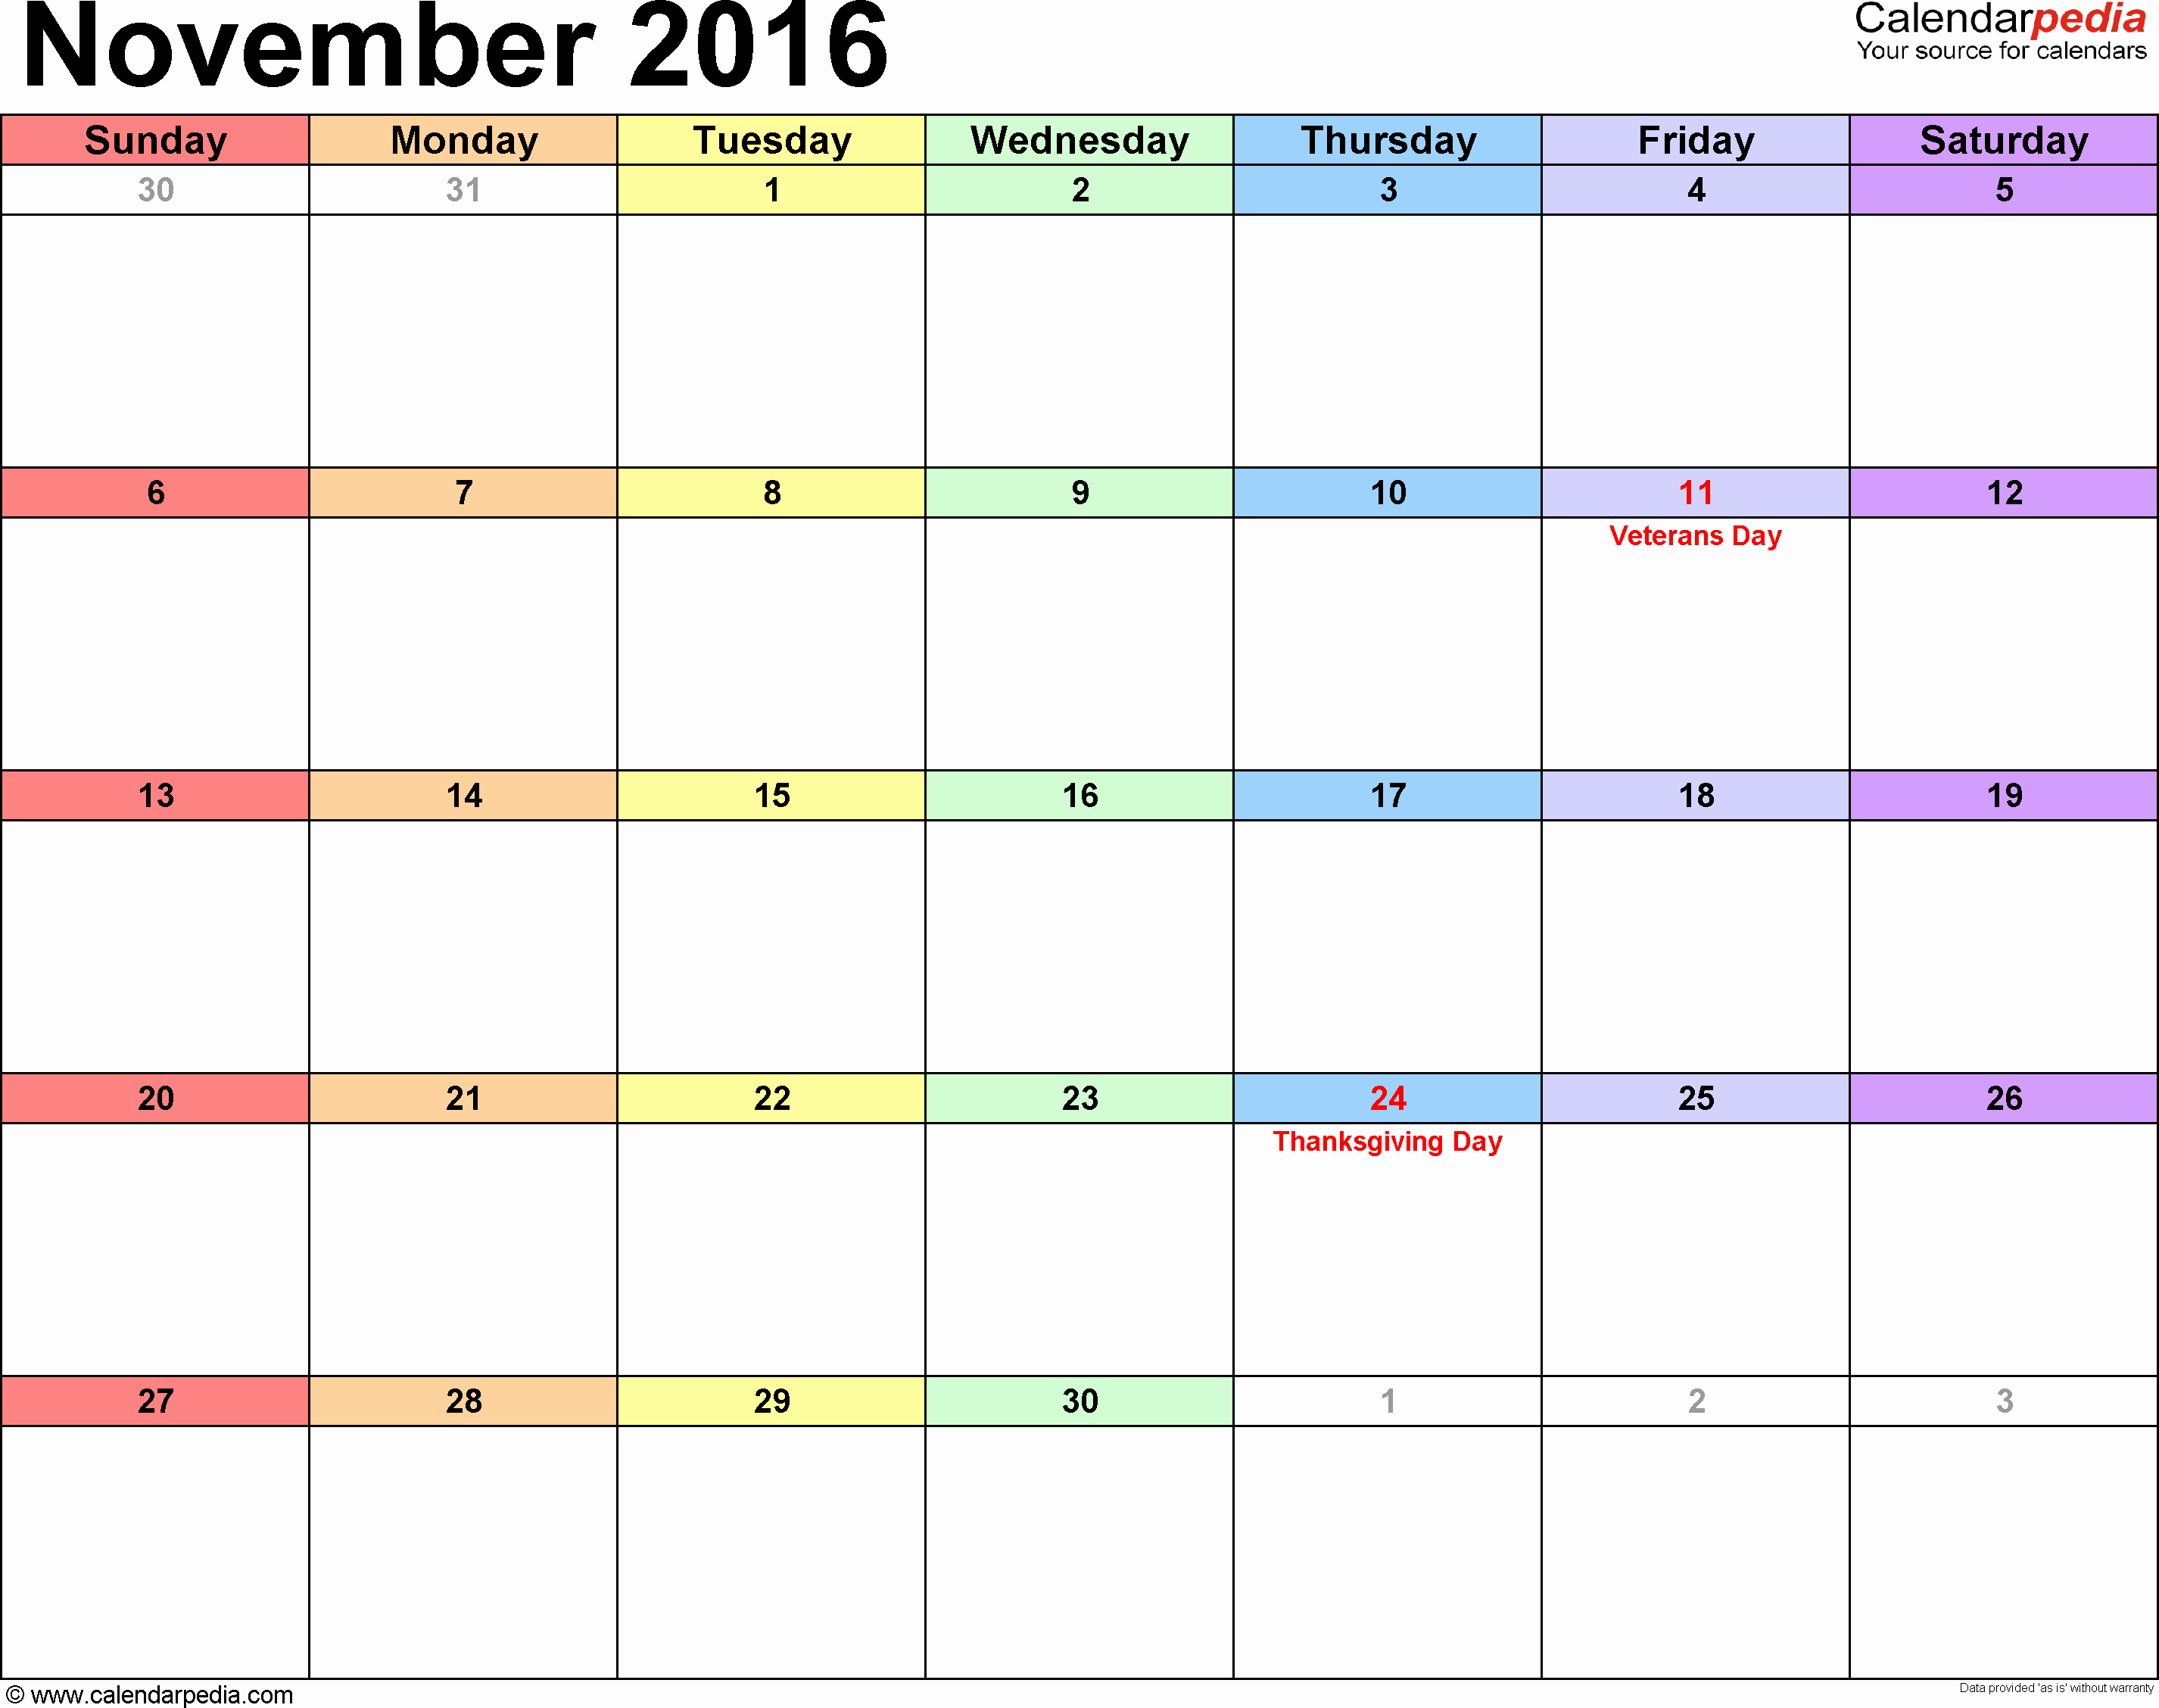 Calendar 2016-17 Template Unique November 2016 Calendars for Word Excel & Pdf